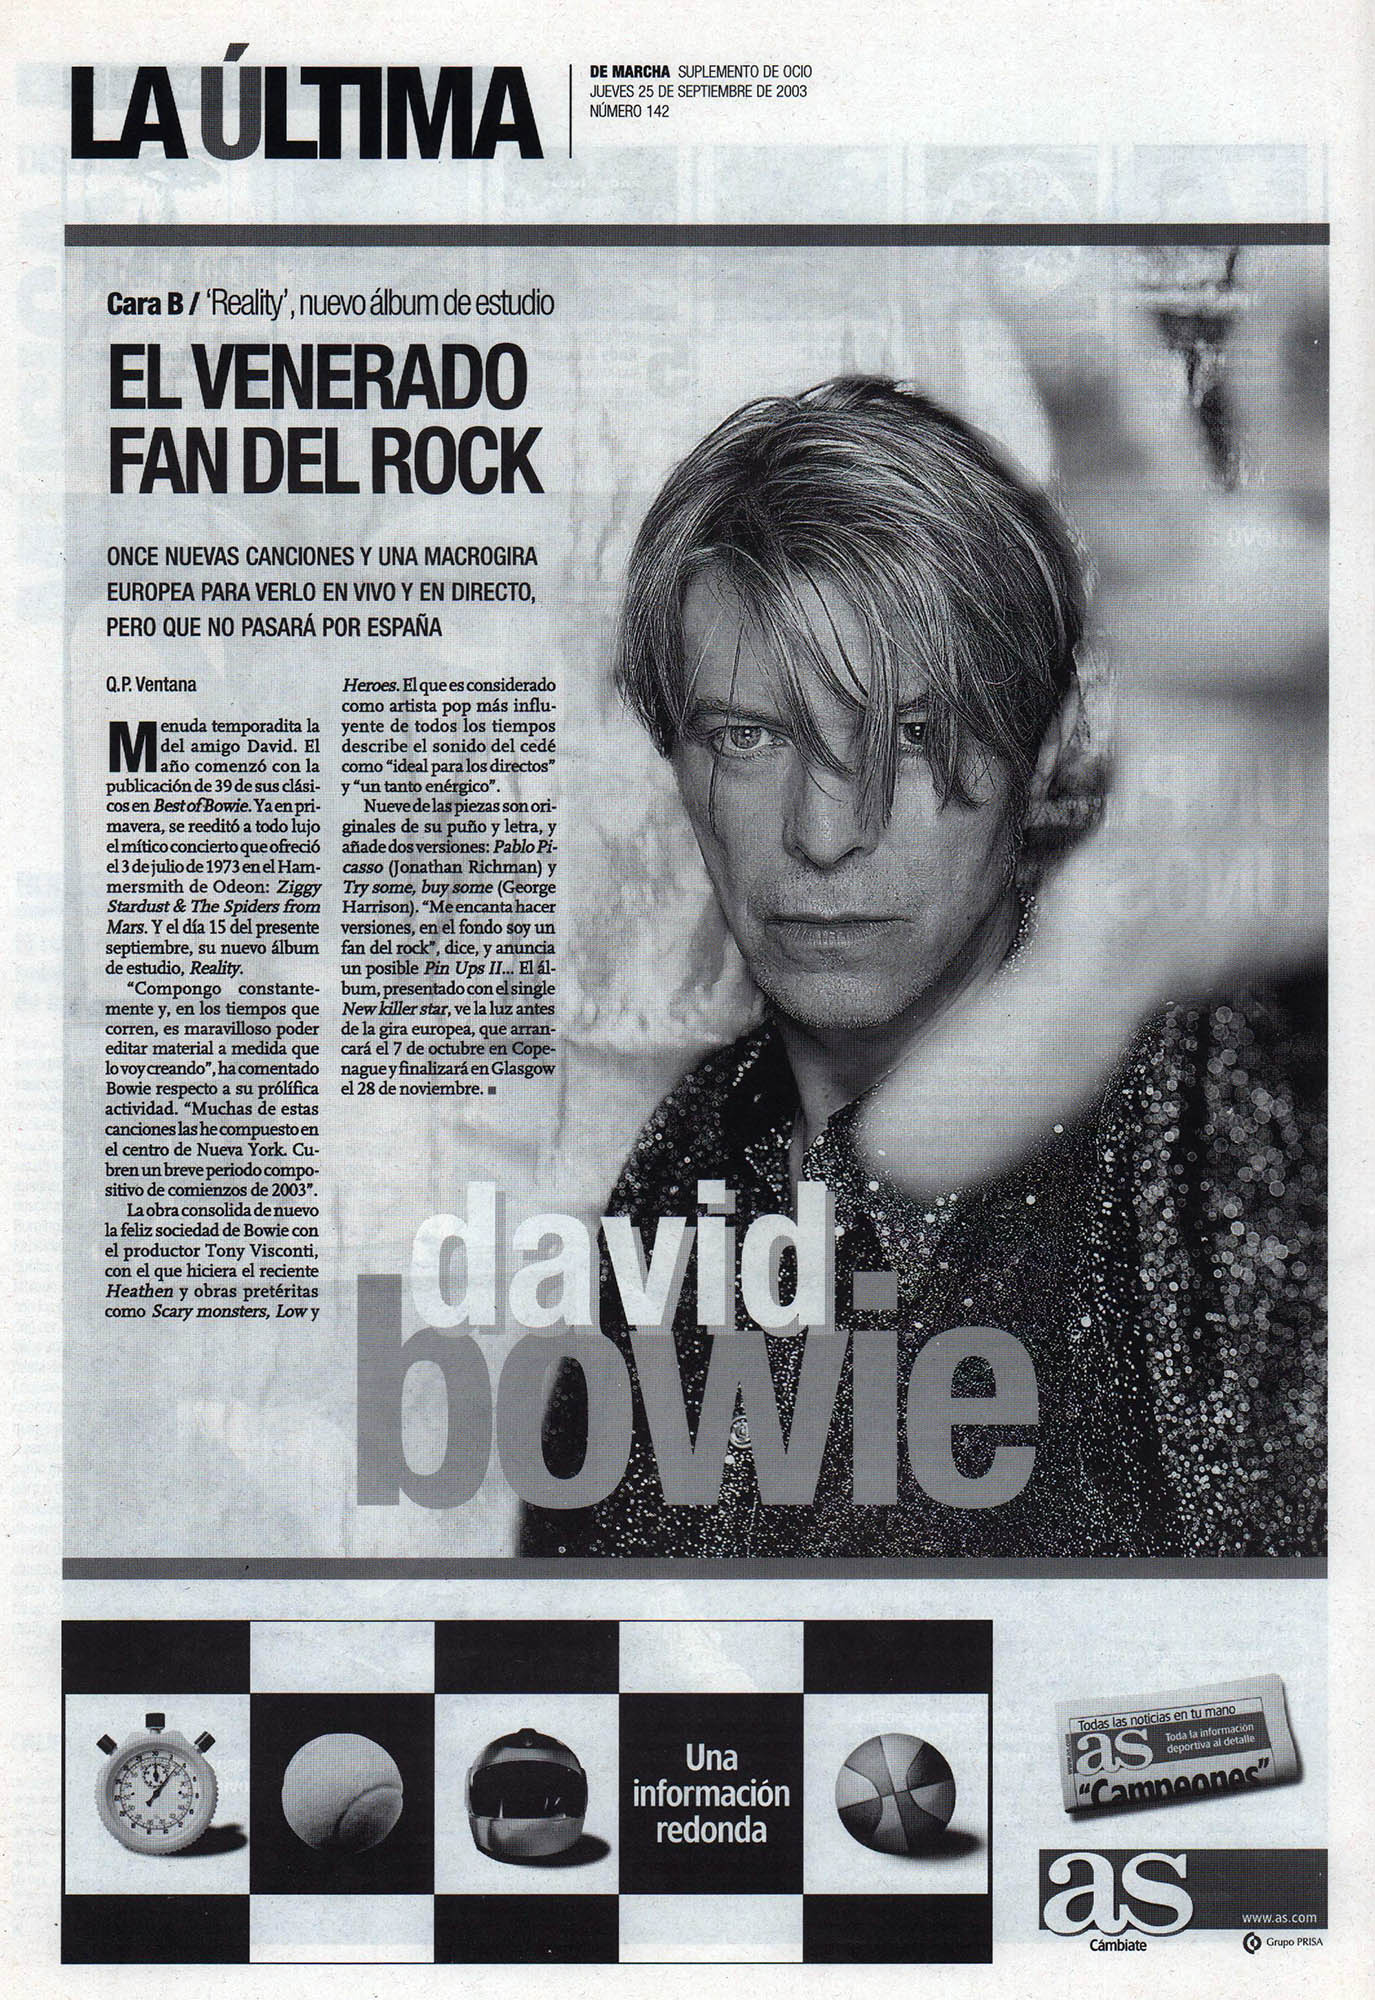 David Bowie: el venerado fan del rock | De Marcha - El Correo | 25 sep 2003